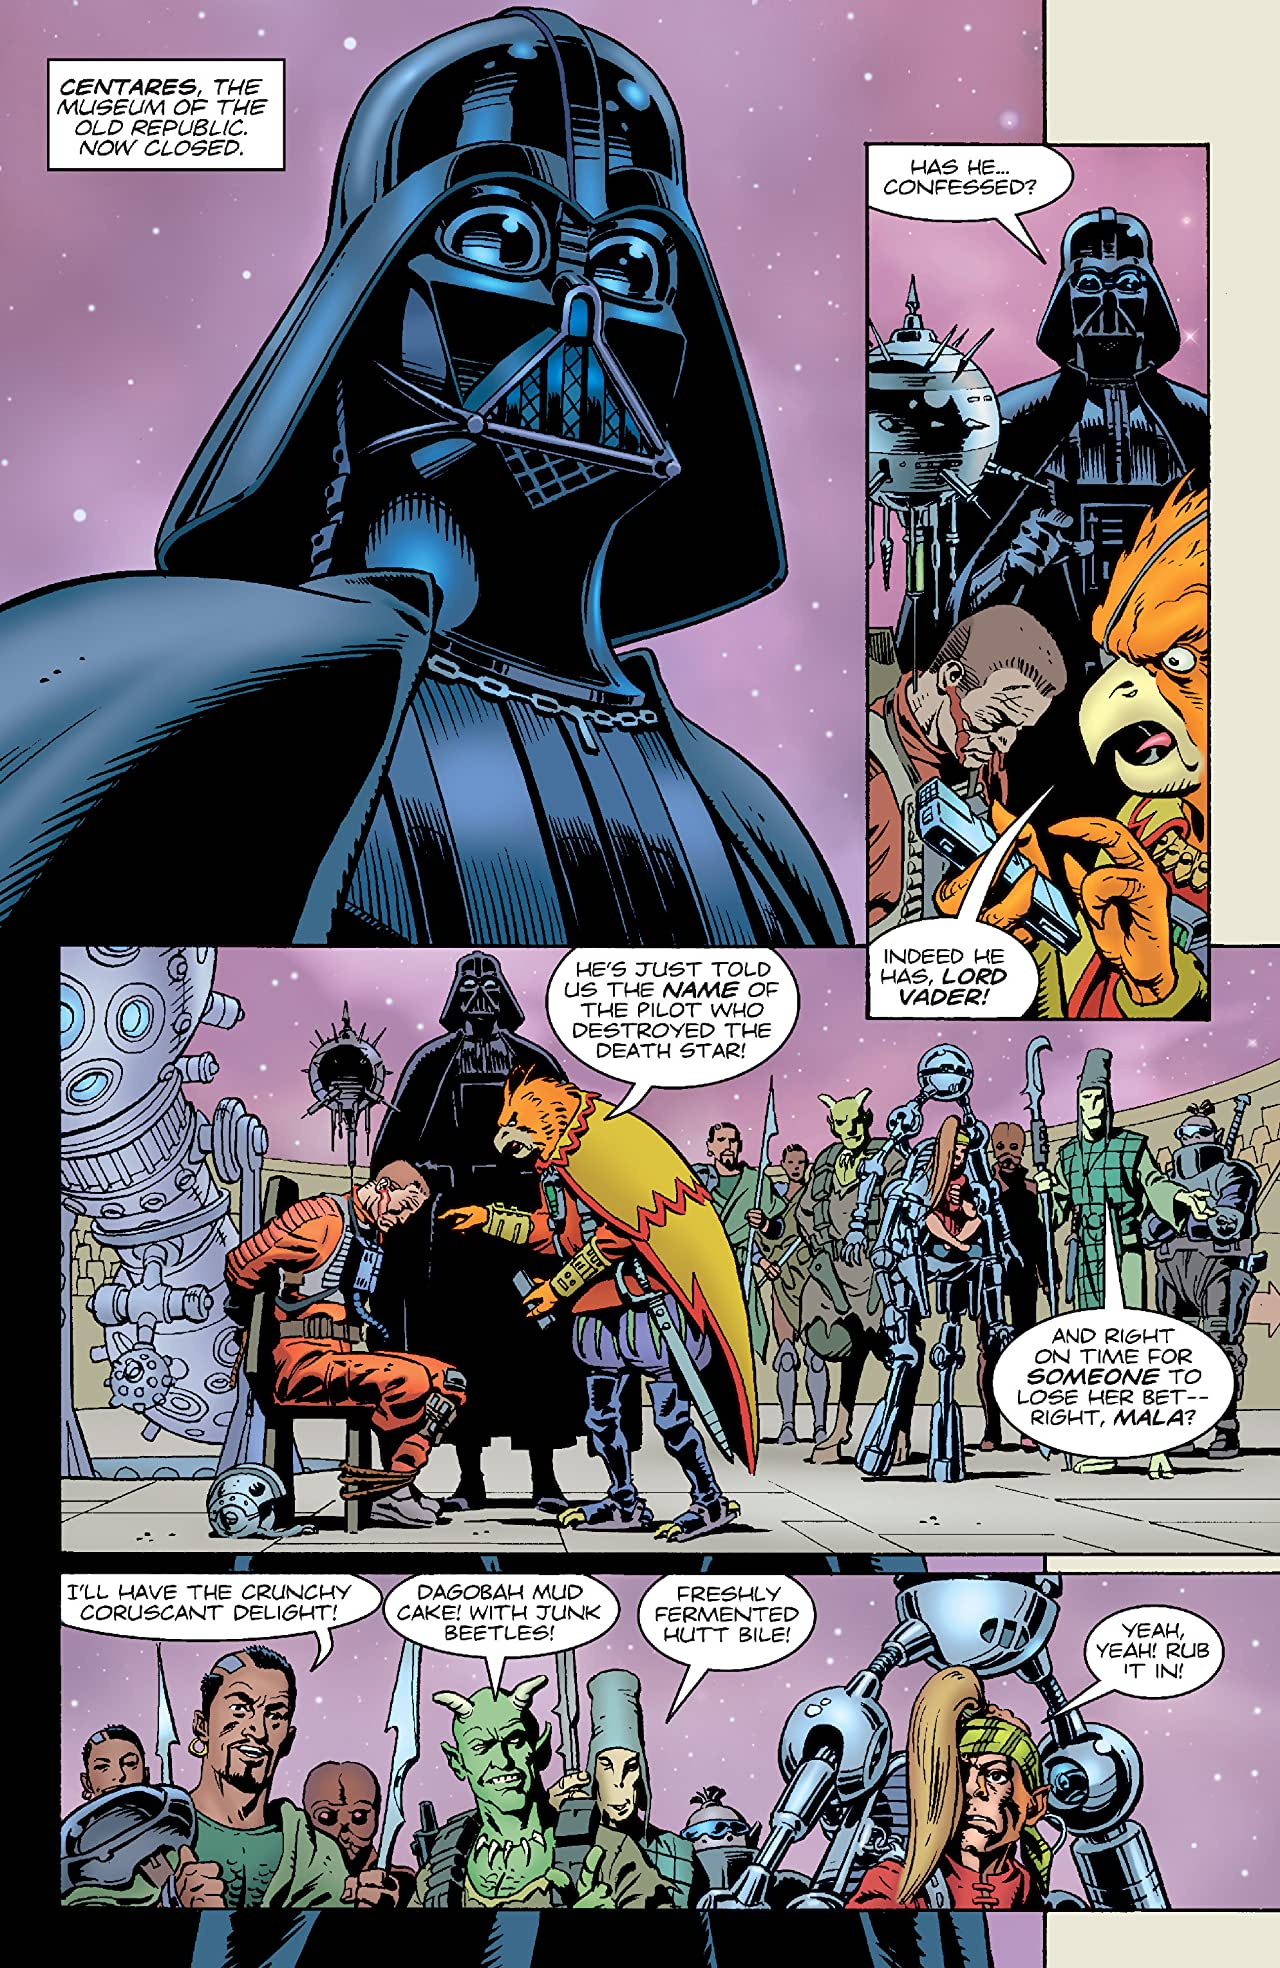 Star Wars: Vader's Quest (1999) #1 (of 4)